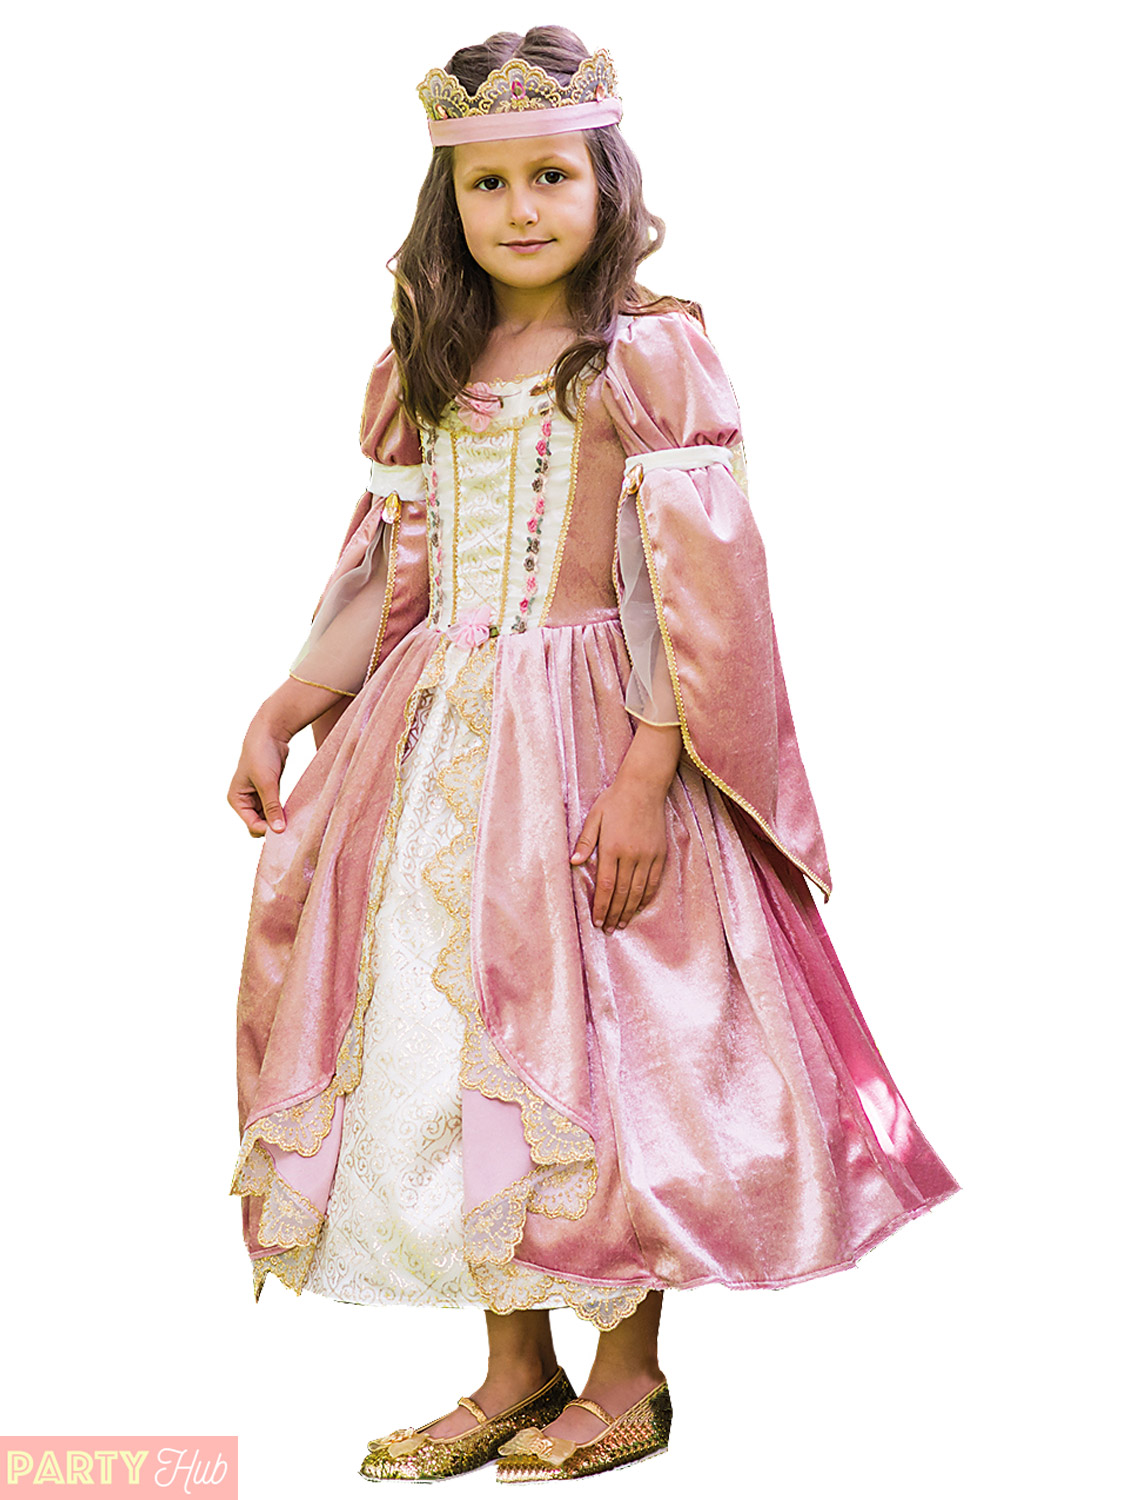 FANCY DRESS COSTUME VICTORIAN GIRL SMALL AGE 3-5